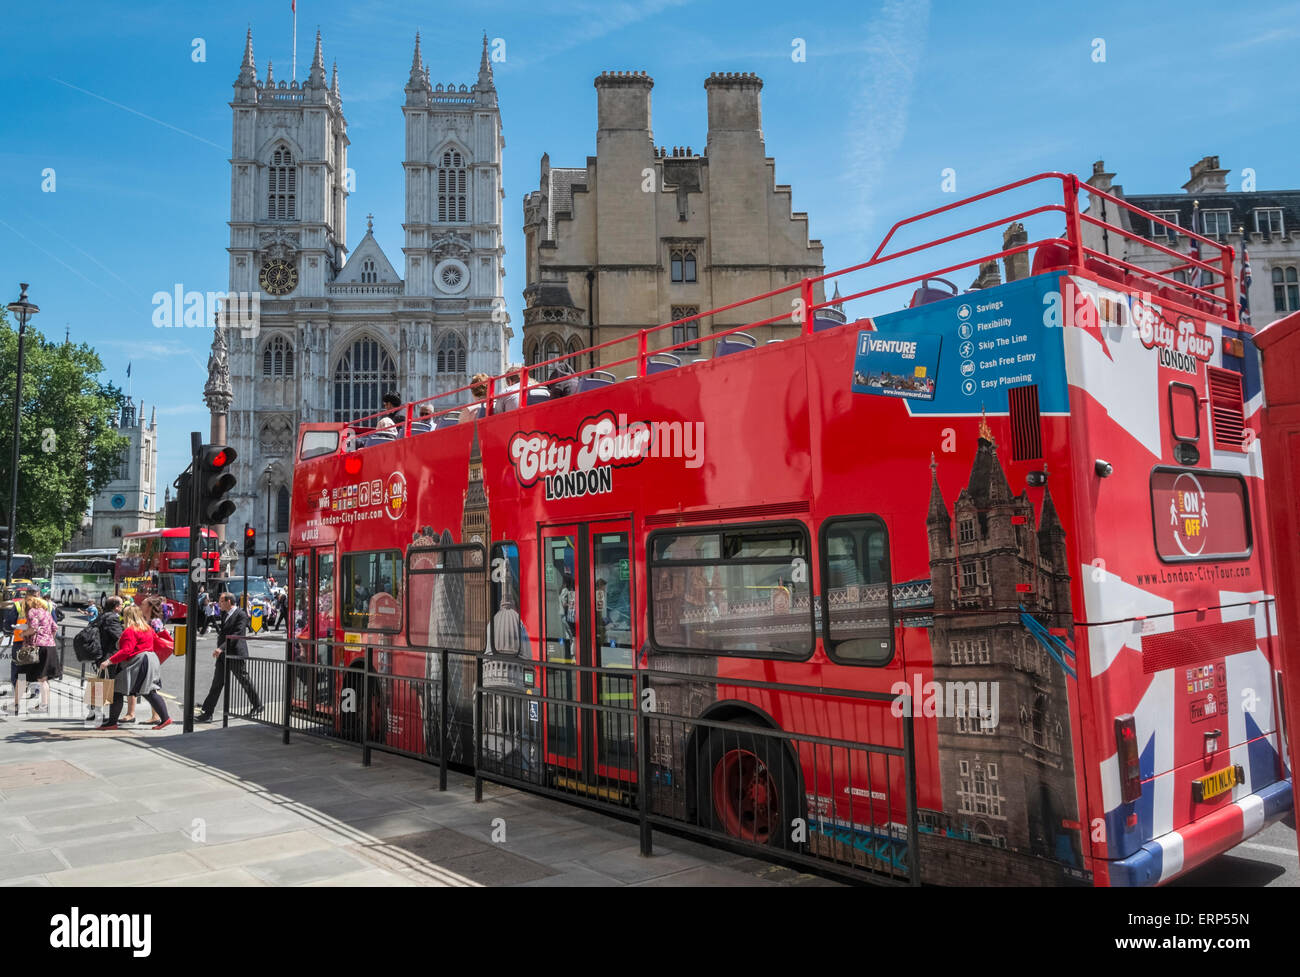 London City Sightseeing Top-Tour-Bus mit Westminster Abbey im Hintergrund, London, England UK geöffnet Stockbild